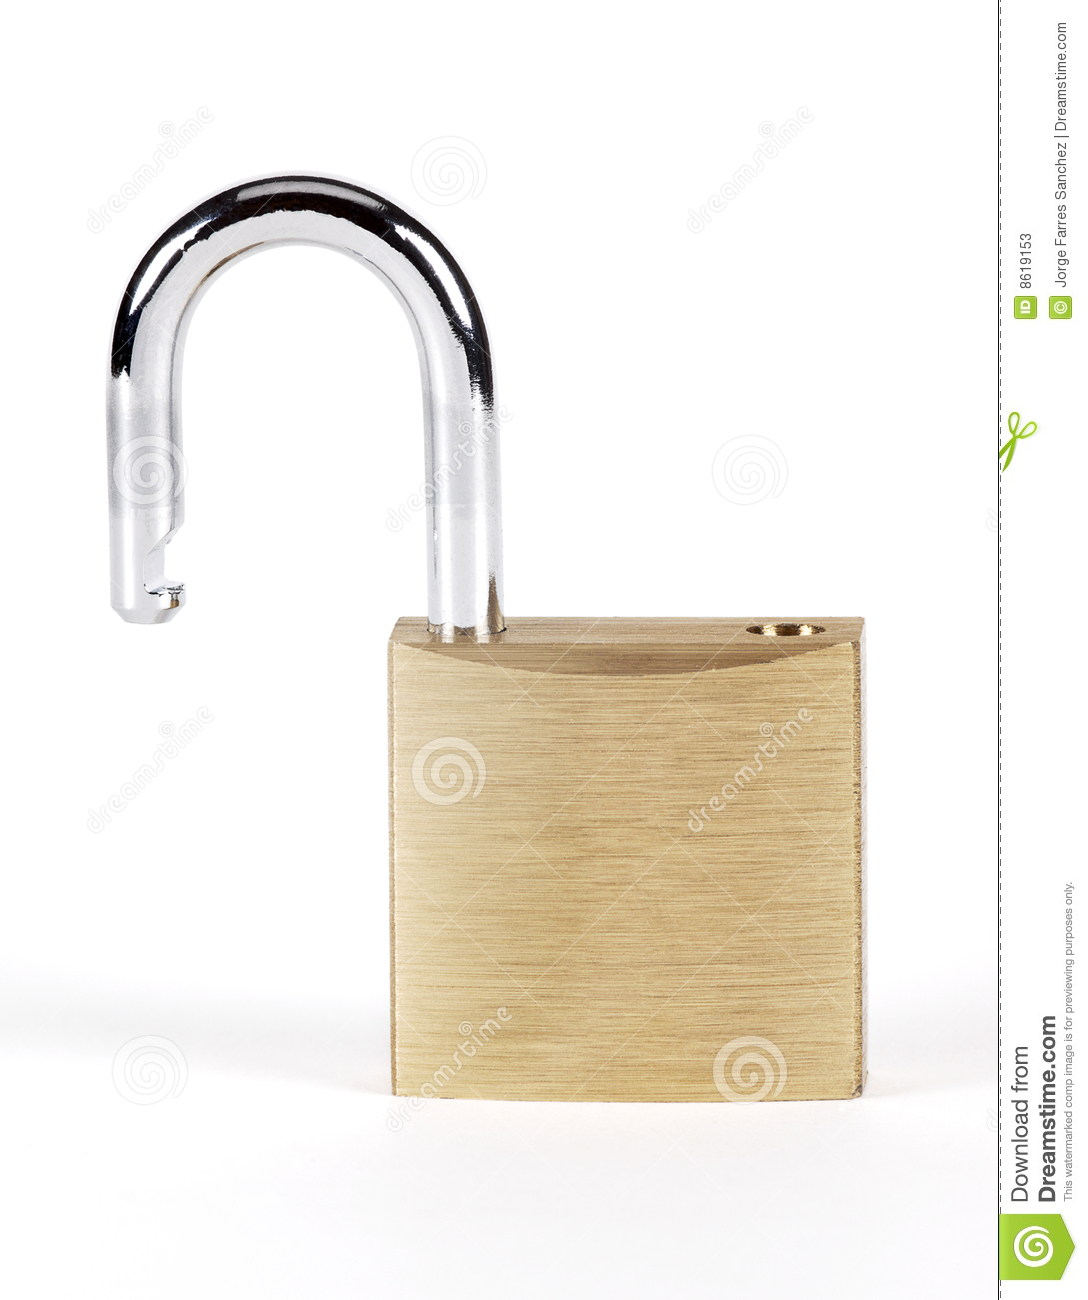 Open lock stock photos image 8619153 - How to open chain lock ...